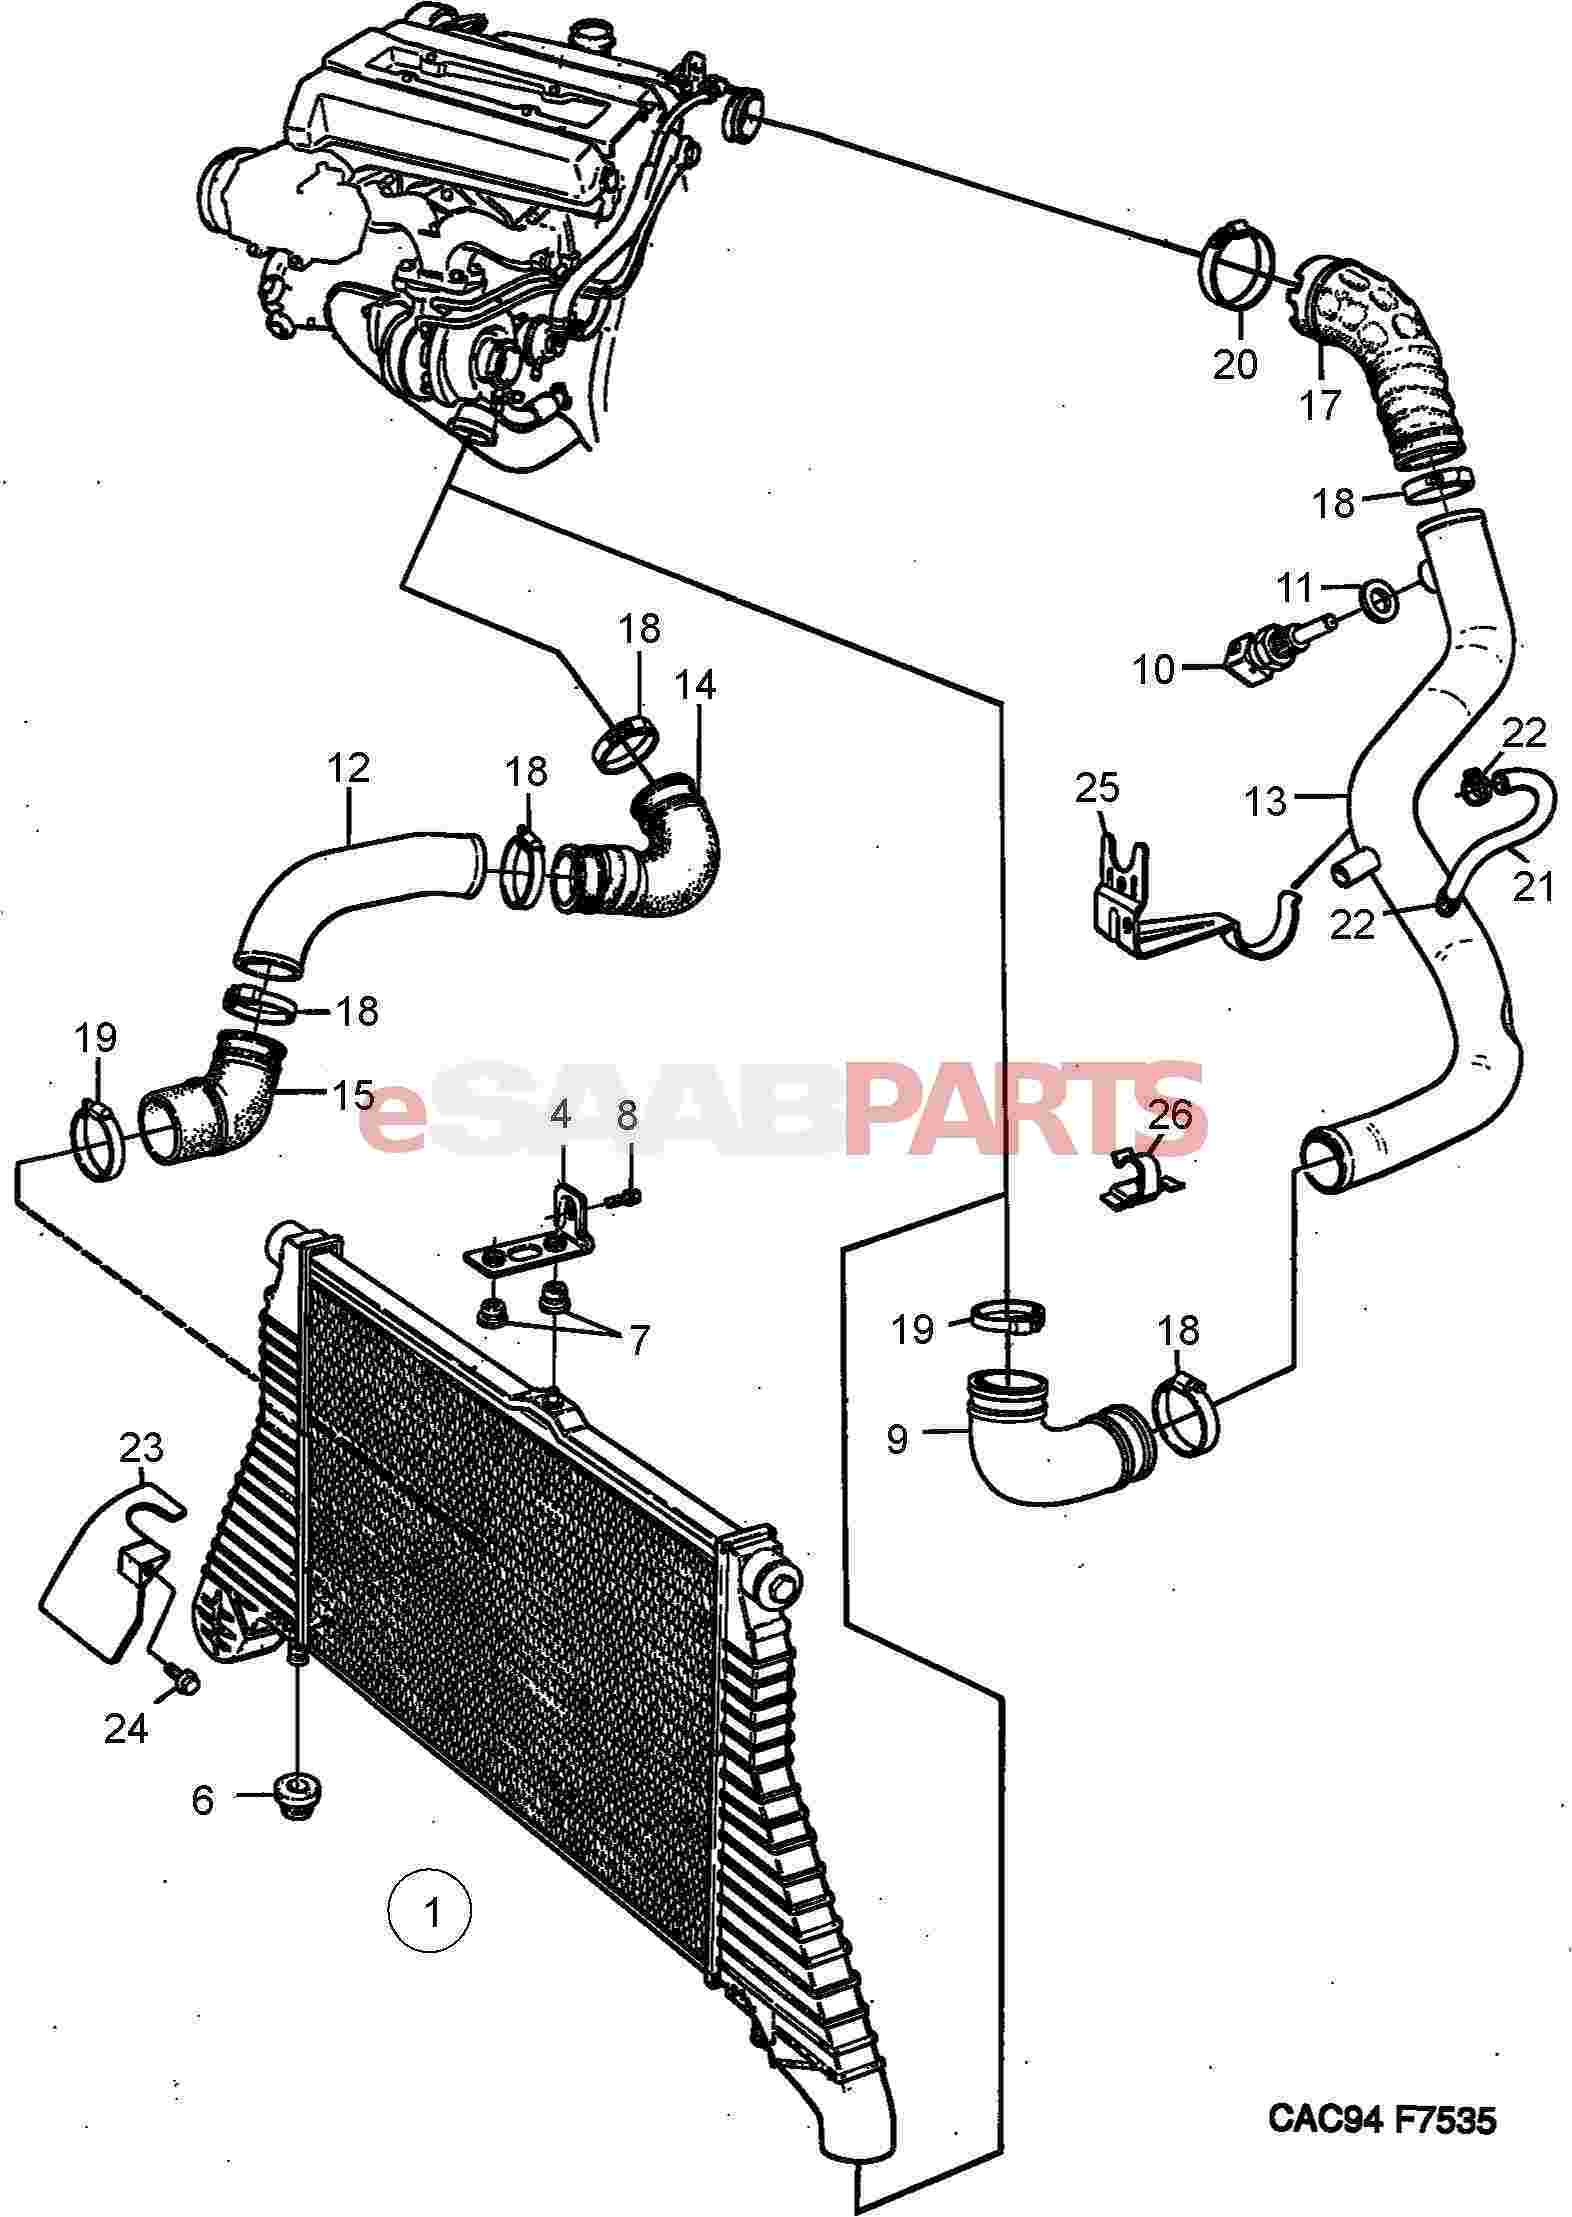 2006 f150 starter relay wiring diagram book the giver plot 1987 ford f 150 fuse box html imageresizertool com